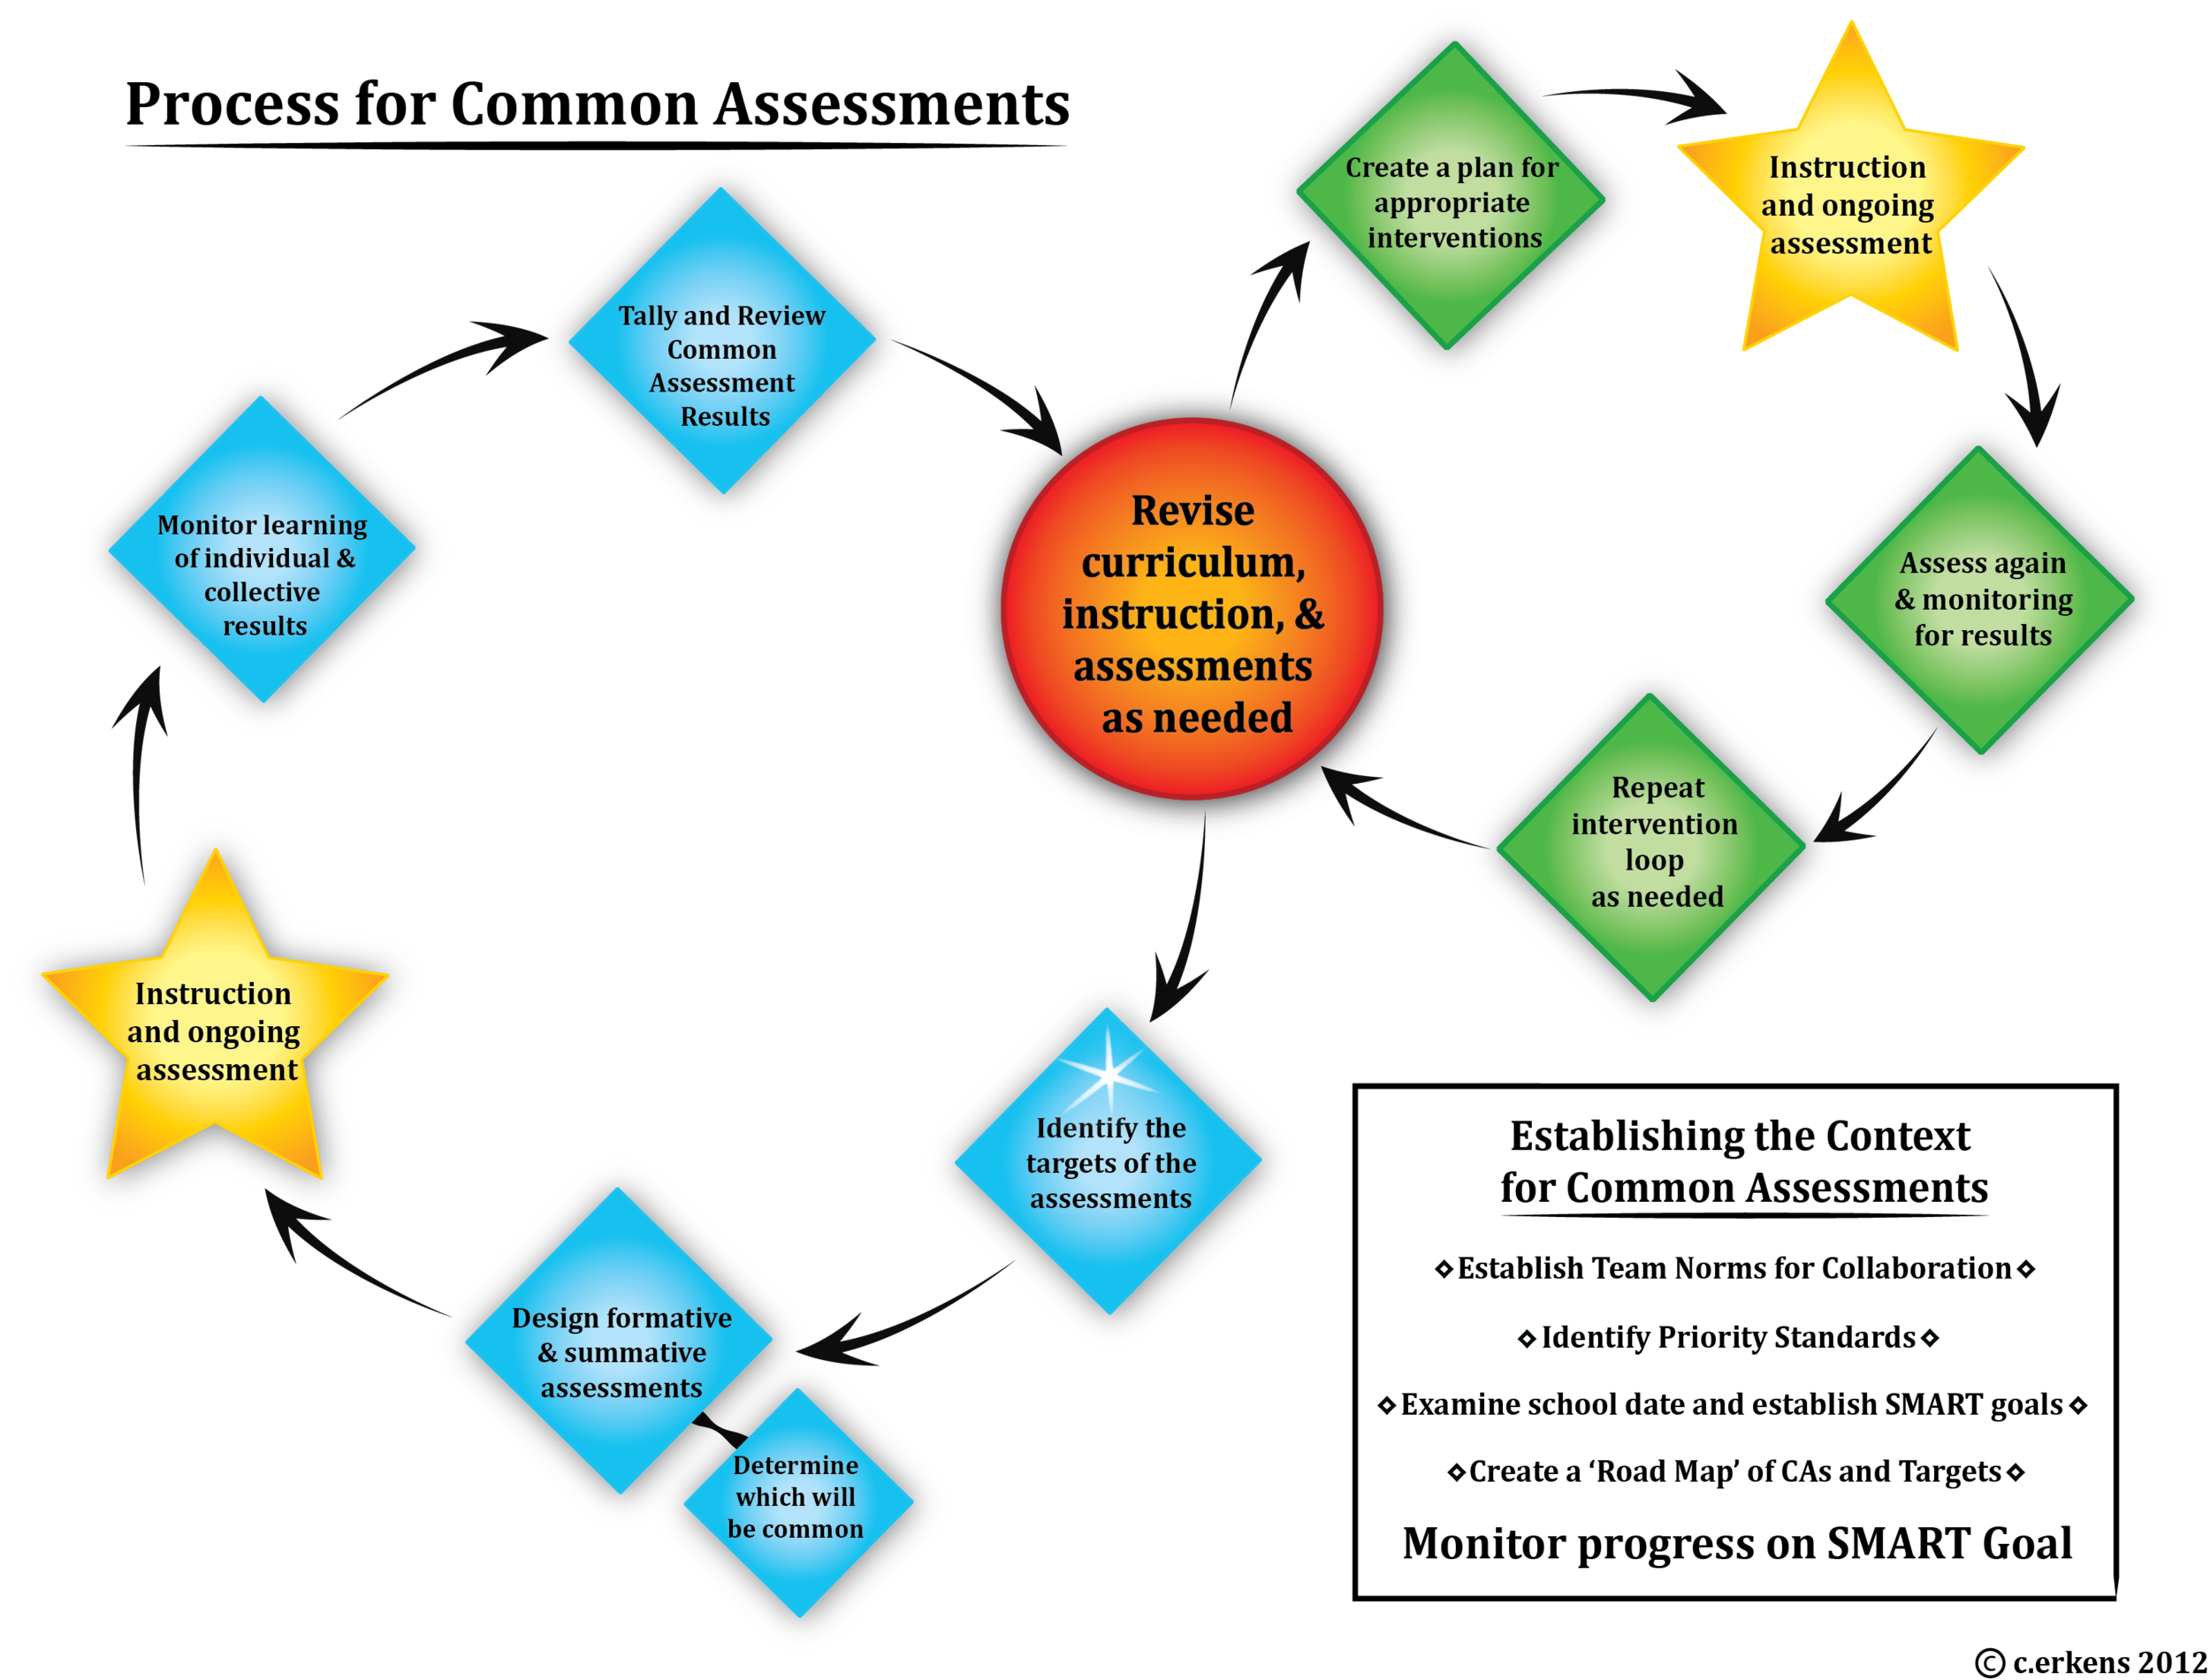 Process for Common Assessments FINAL.png